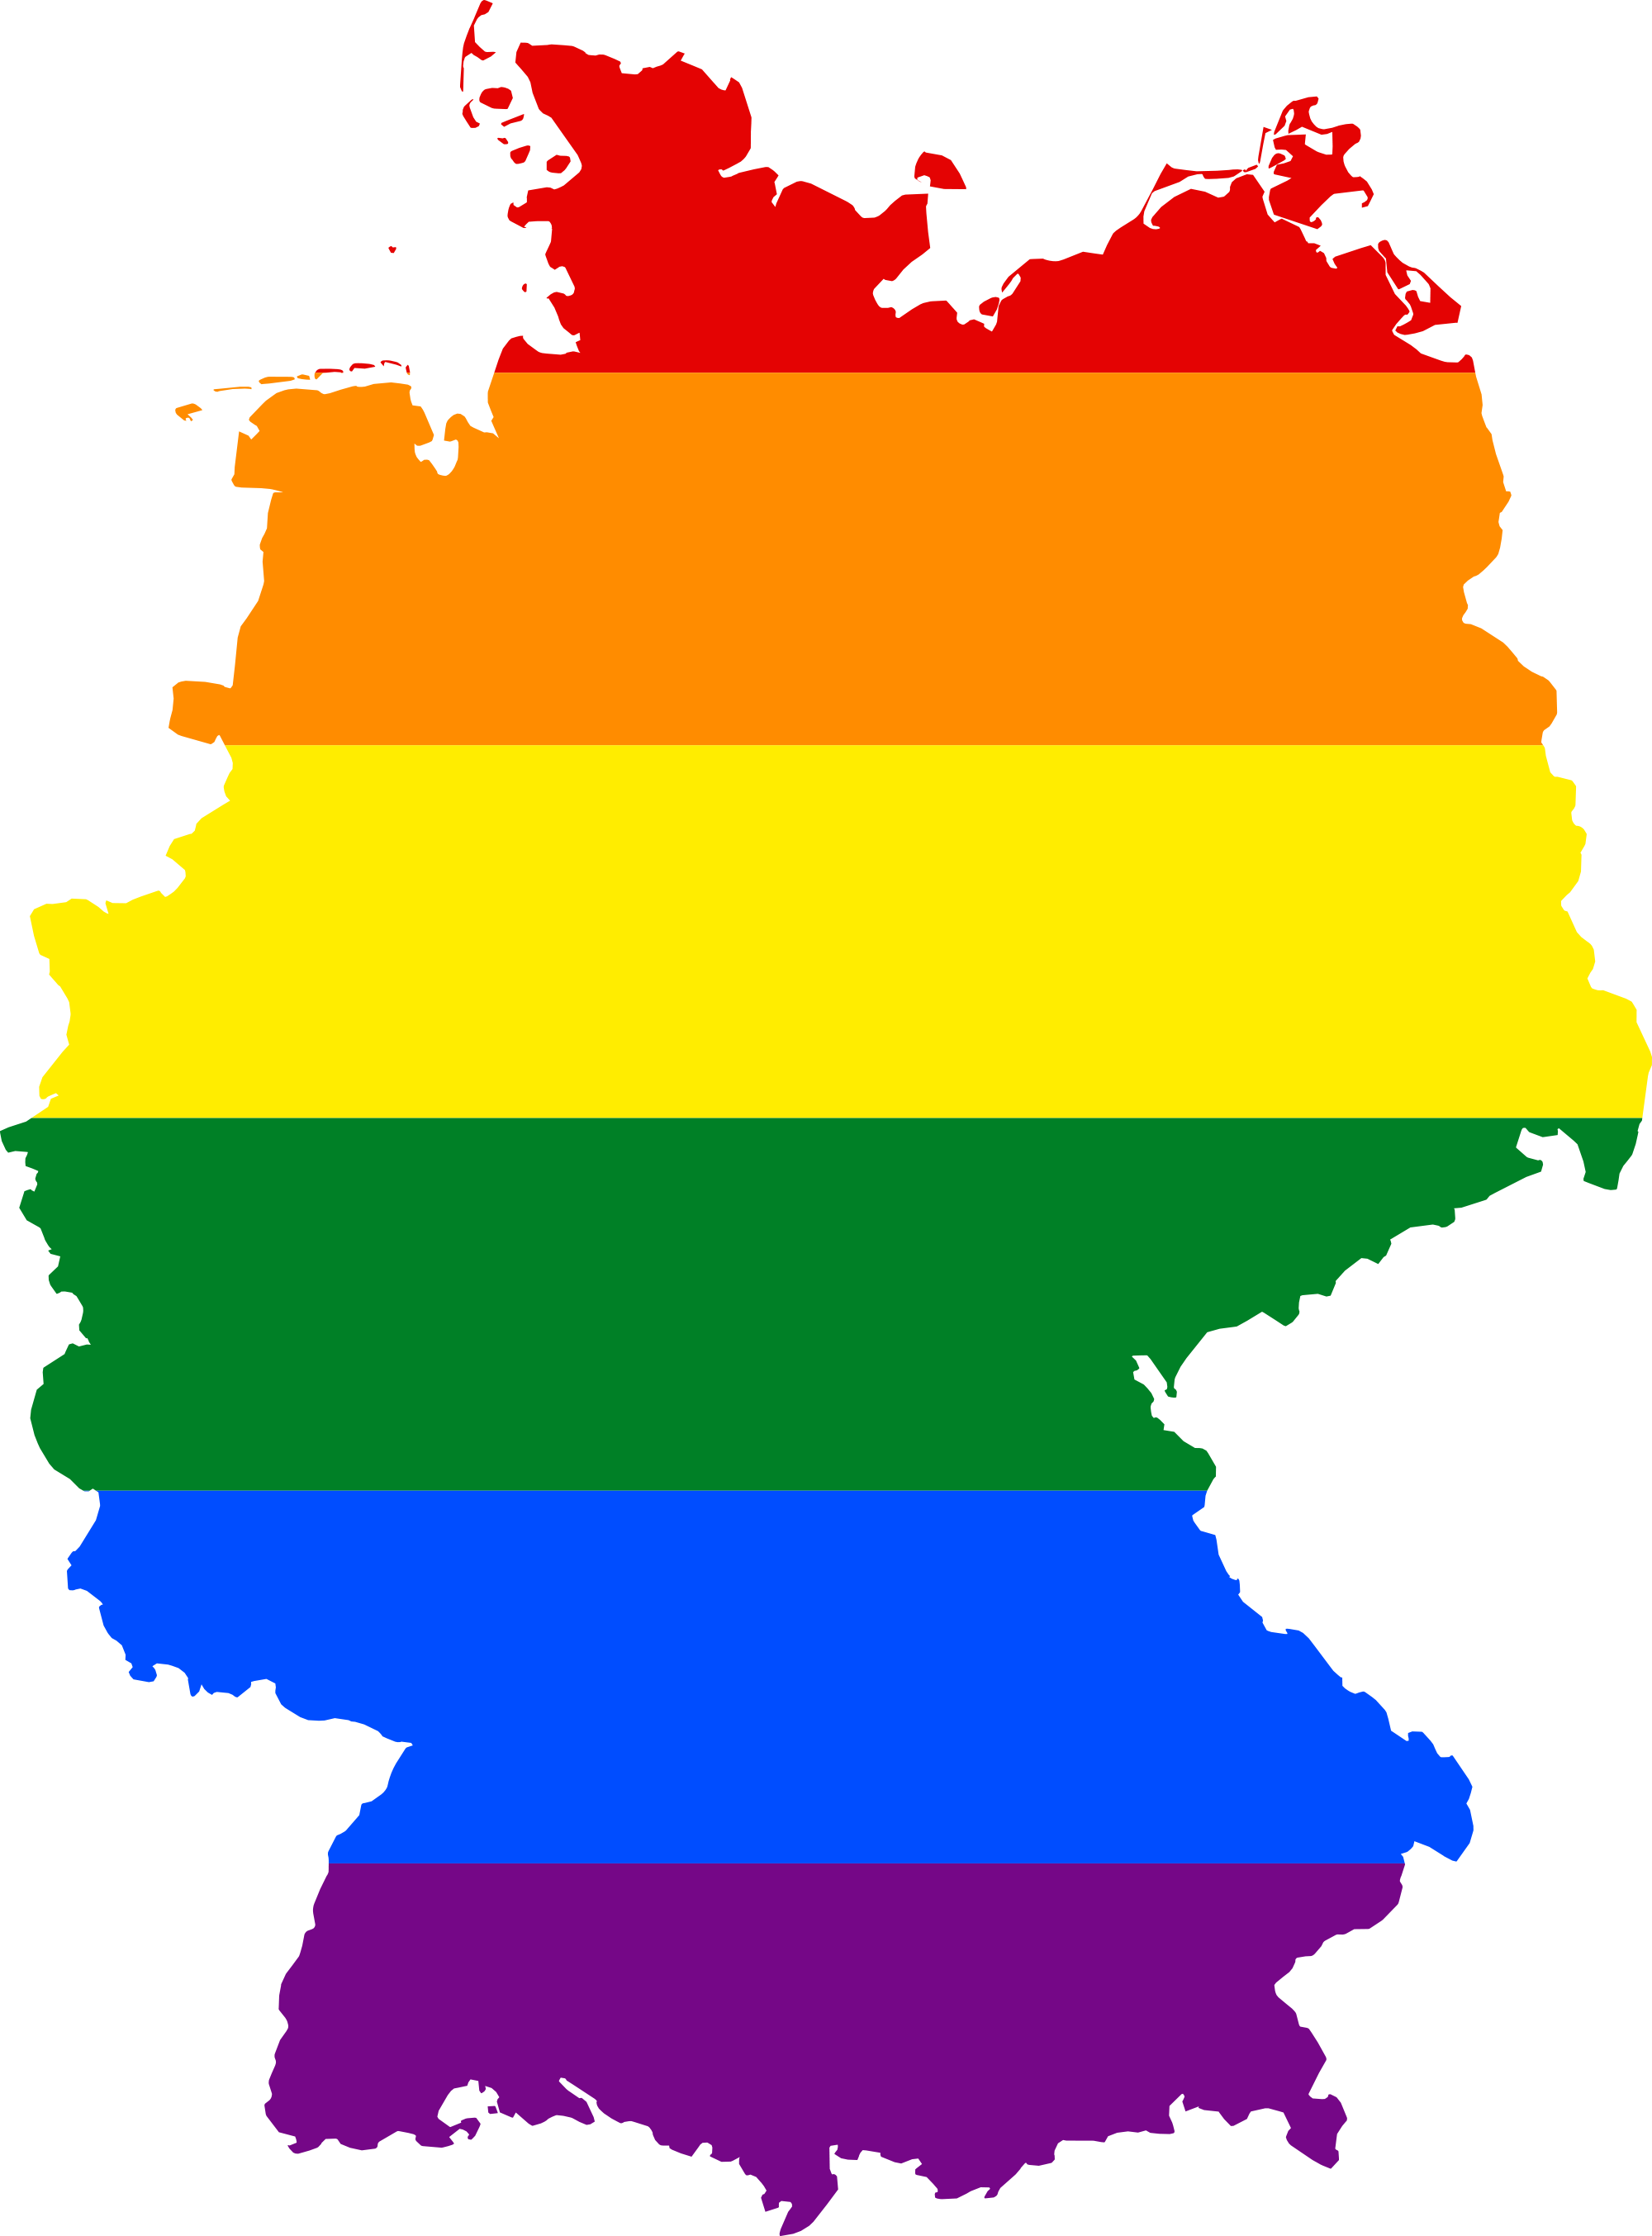 Transparent same clipart - Merkel's Decision To Allow Same Sex Marriage Is A Calculated - Germany Lgbt Flag